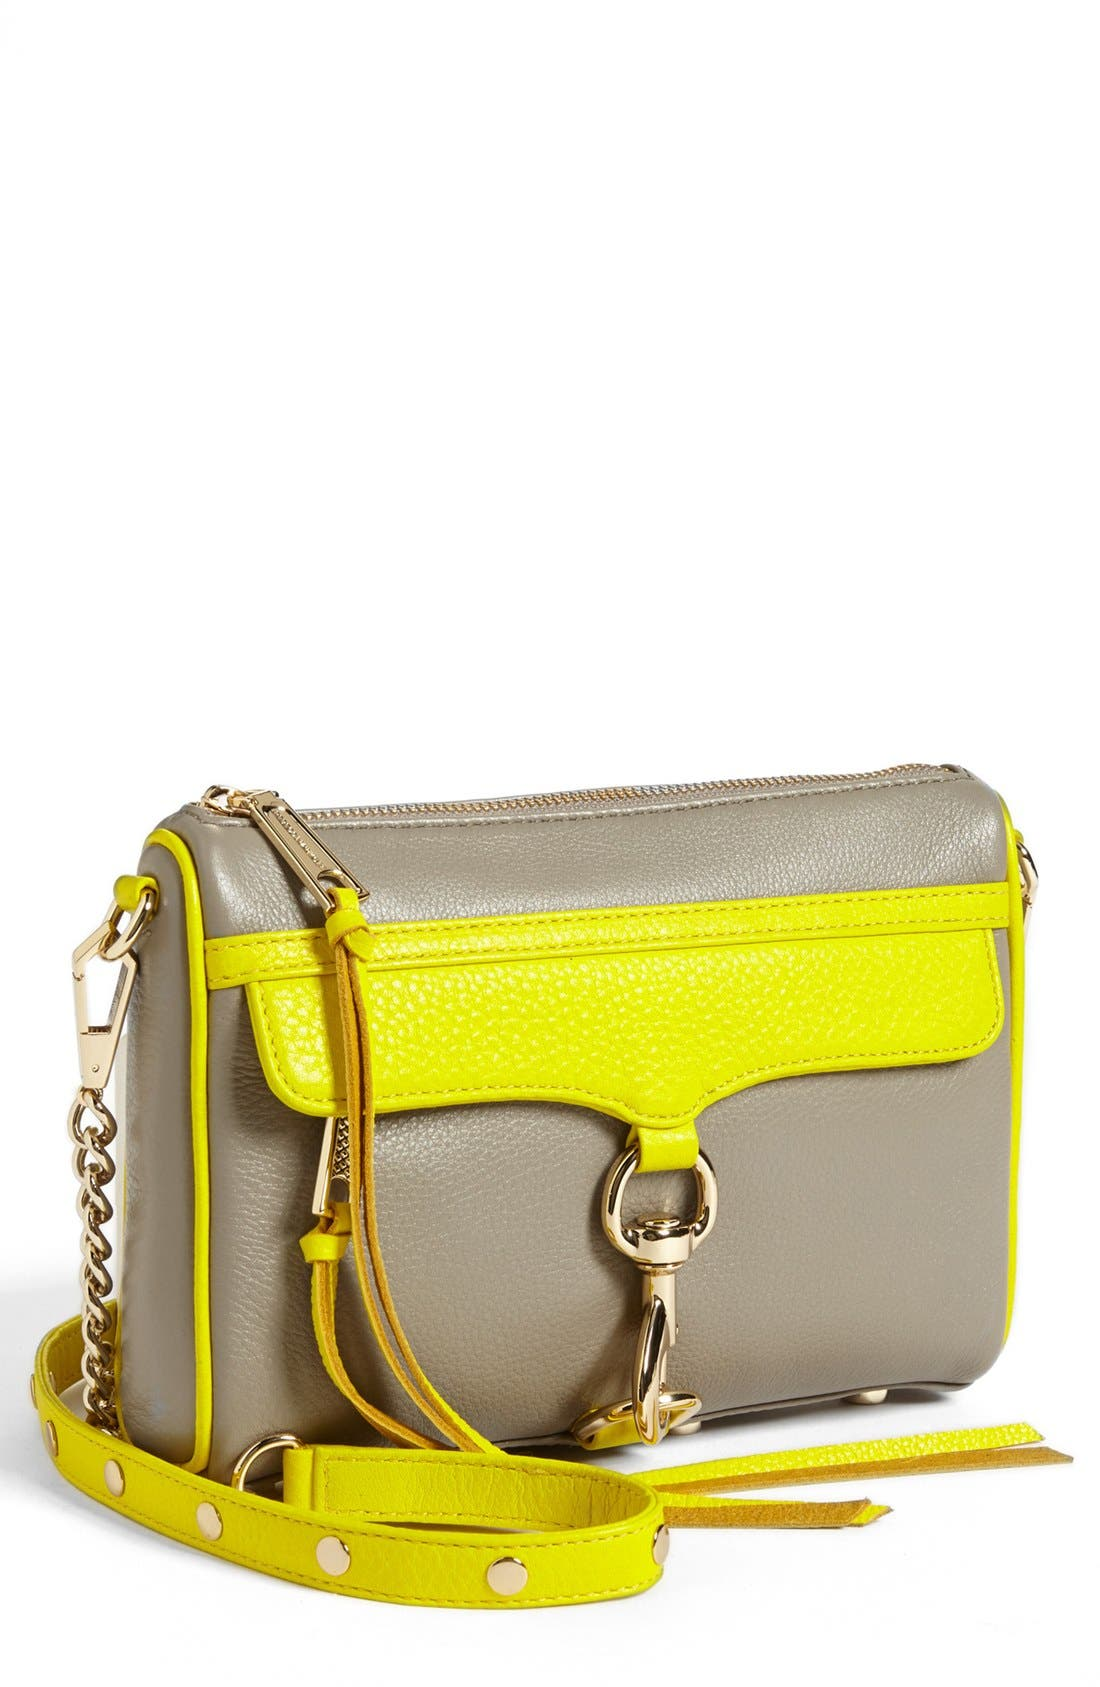 Main Image - Rebecca Minkoff 'Mini MAC' Crossbody Clutch (Nordstrom Exclusive)